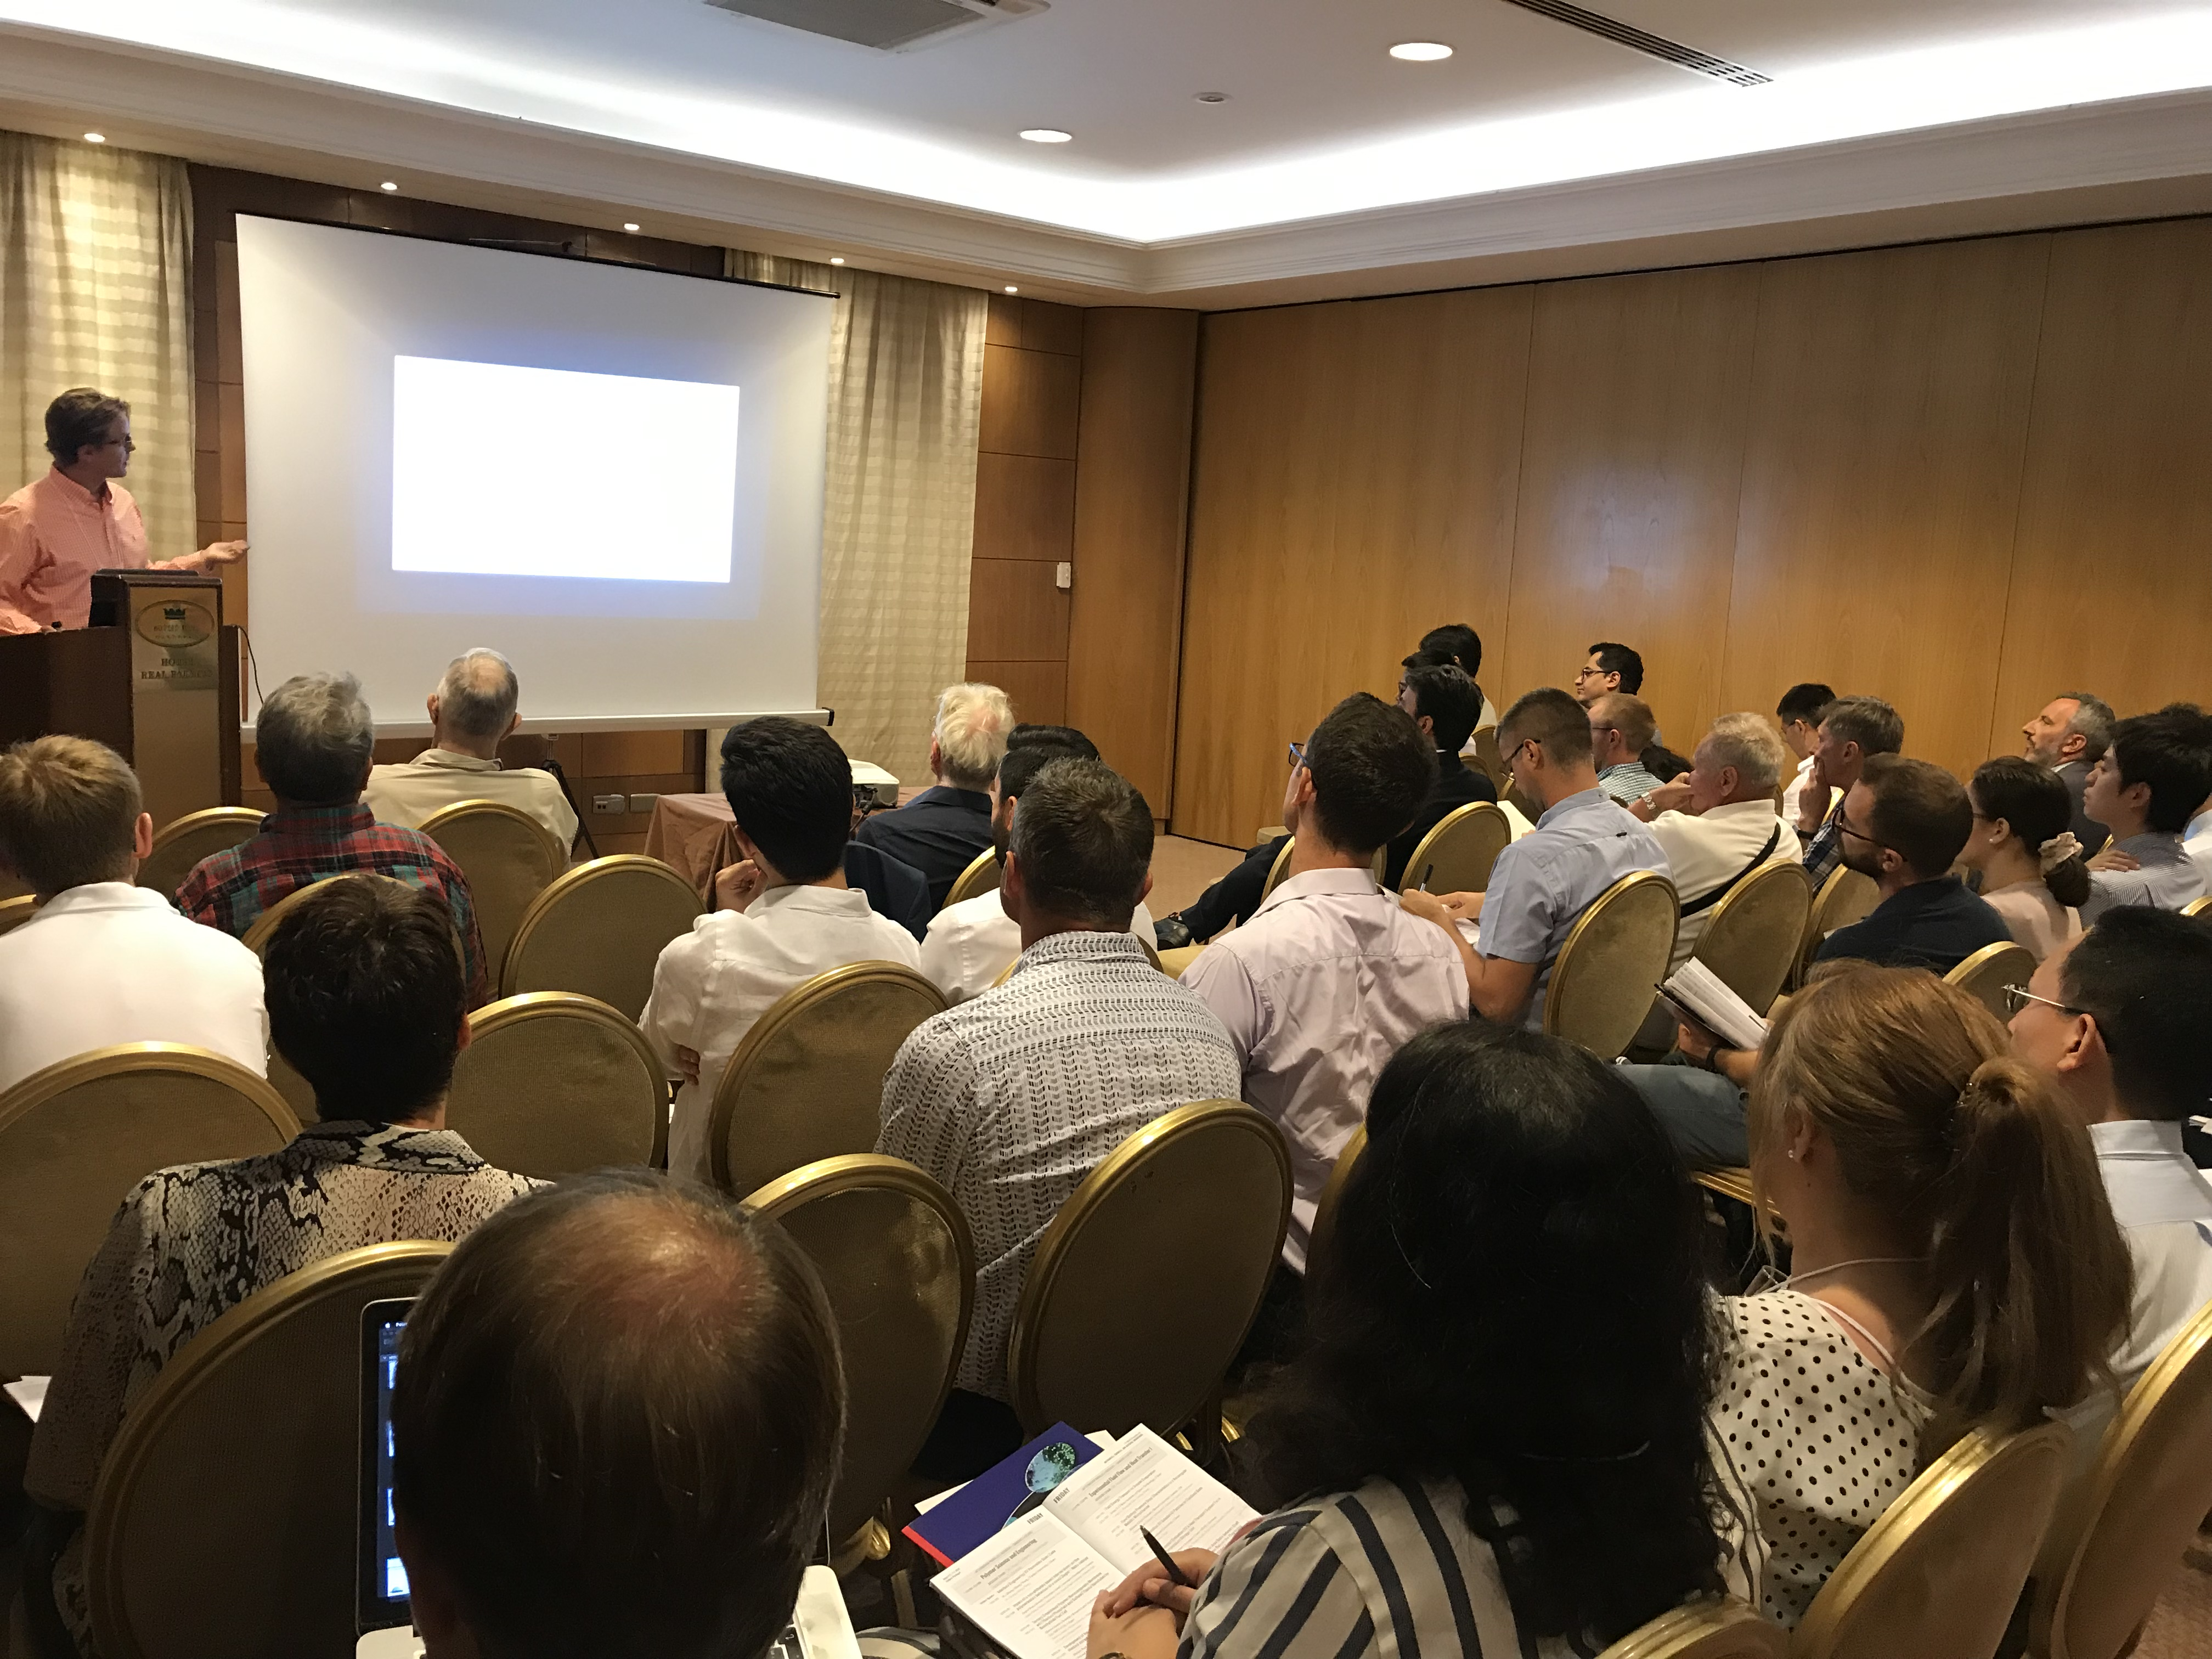 5th World Congress on Mechanical, Chemical, and Material Engineering (MCM'19) - August 15 - 17, 2019 | Lisbon, Portugal - Event Photos